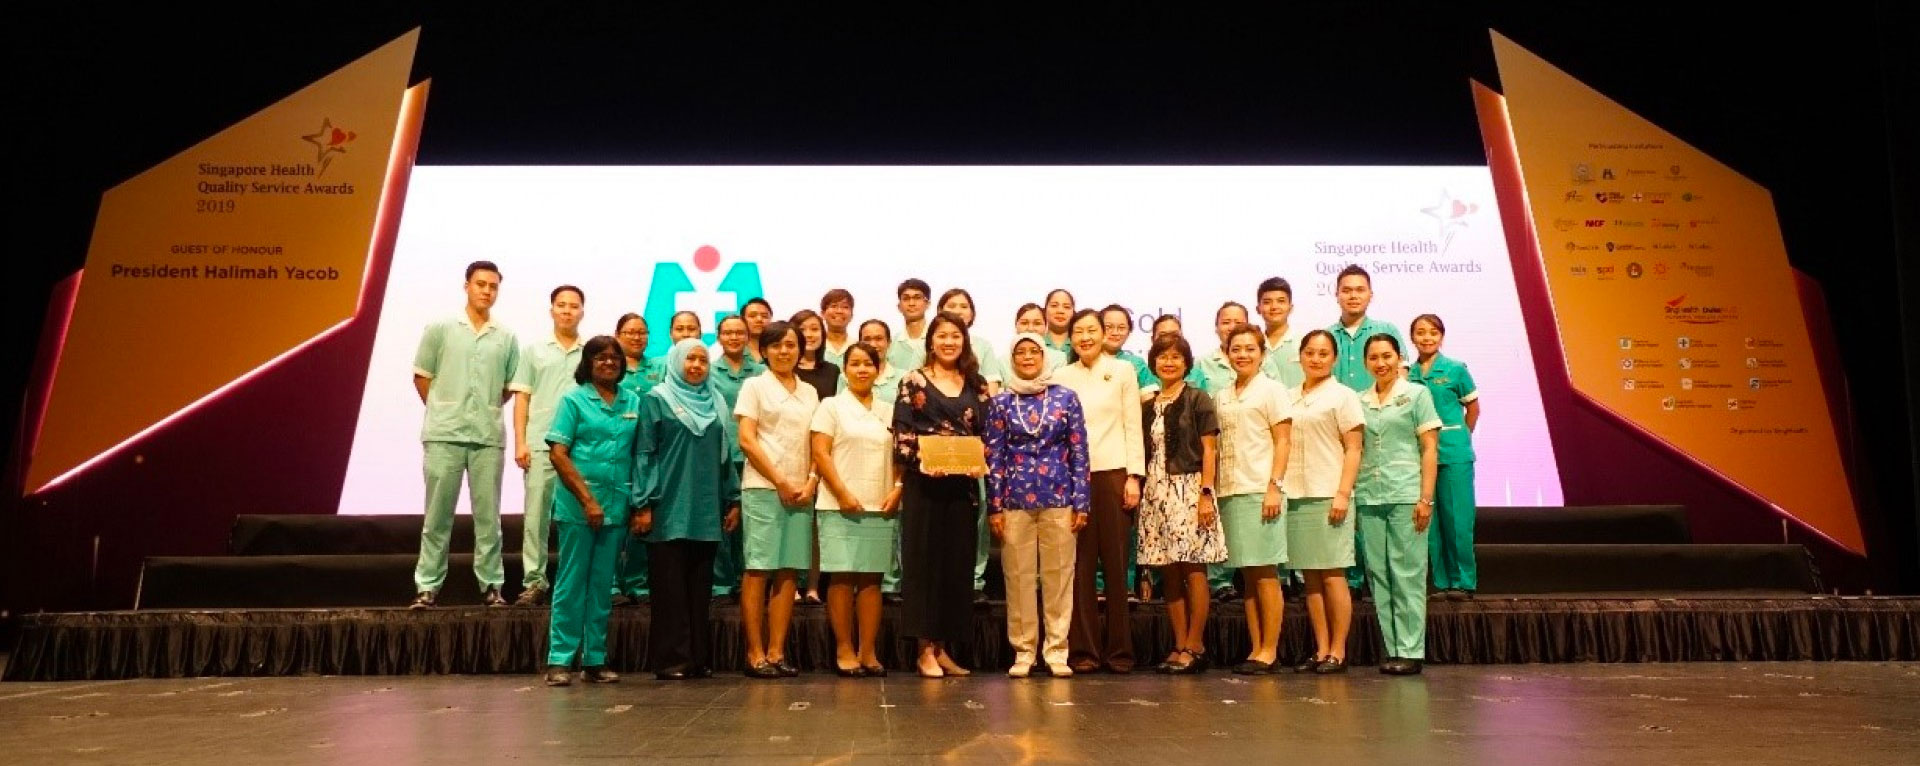 Reaching new heights with record number wins at the Singapore Health Quality Service Award 2019